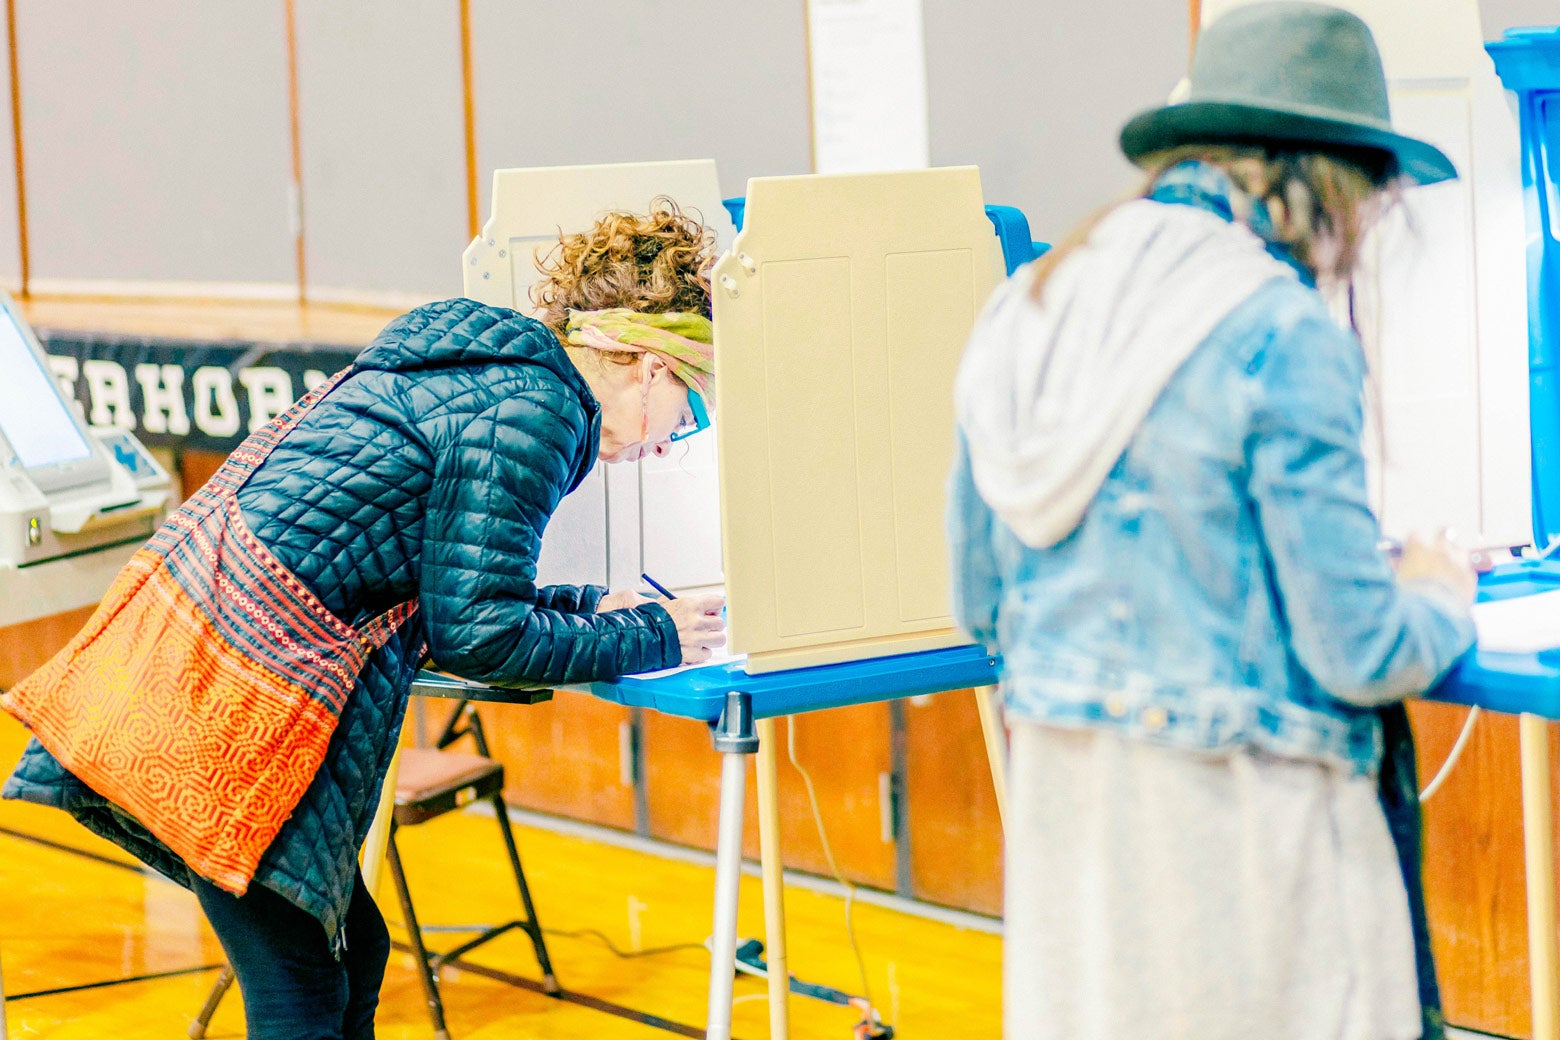 Voters cast ballots at a polling station in Minneapolis on Tuesday.